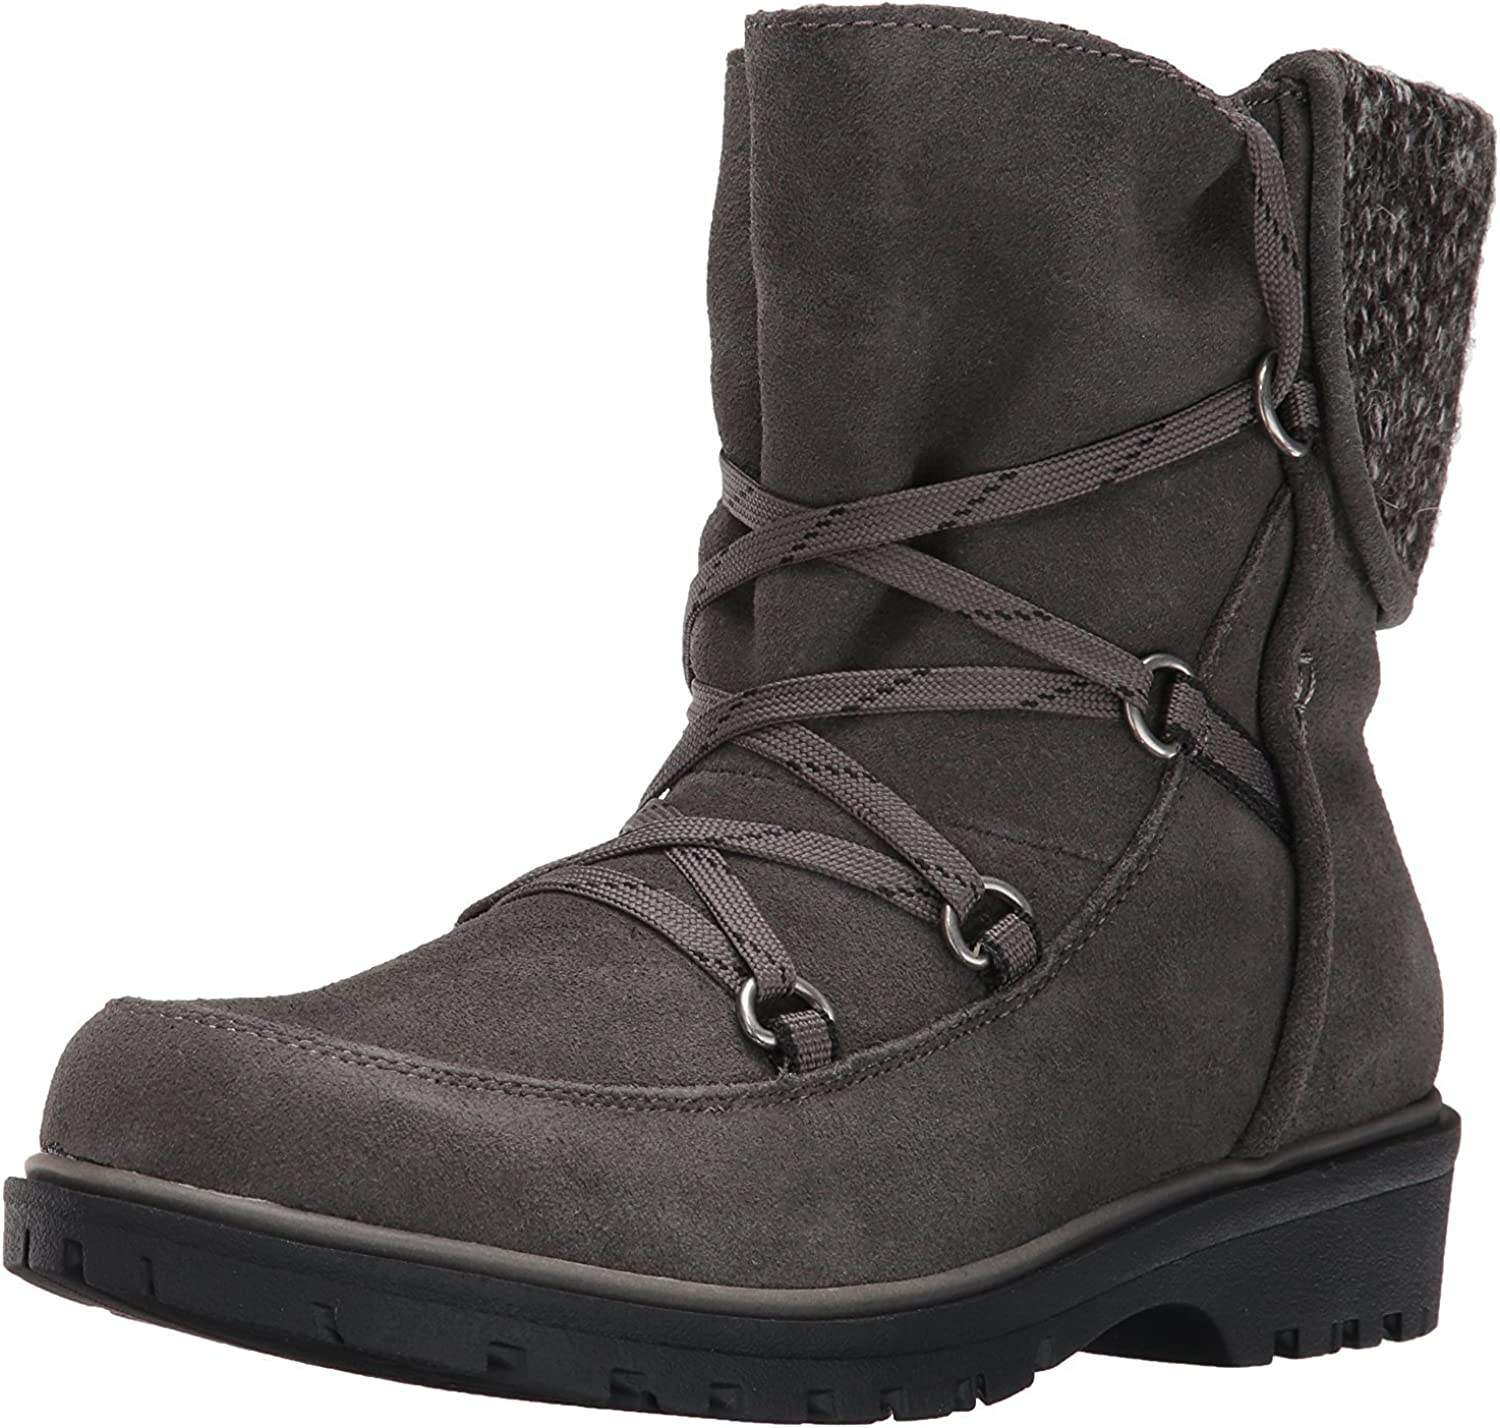 Bare Traps Womens Sharleen Leather Closed Toe Ankle Cold, Dark Grey, Size 5.5